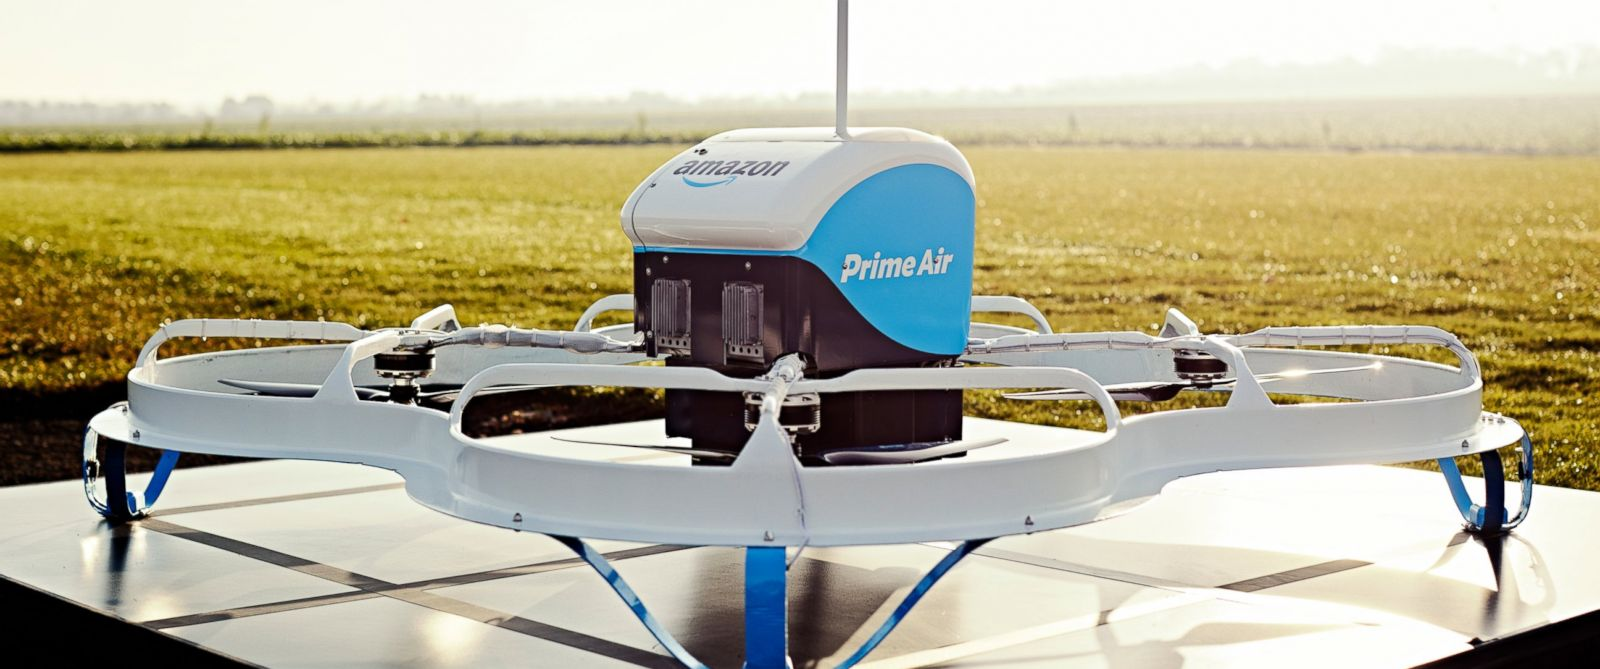 PHOTO: Amazon announced today its Prime Air drone has successfully completed its first delivery to a customer in England. While still in a beta trial, the service is expected to expand to the service to other countries.